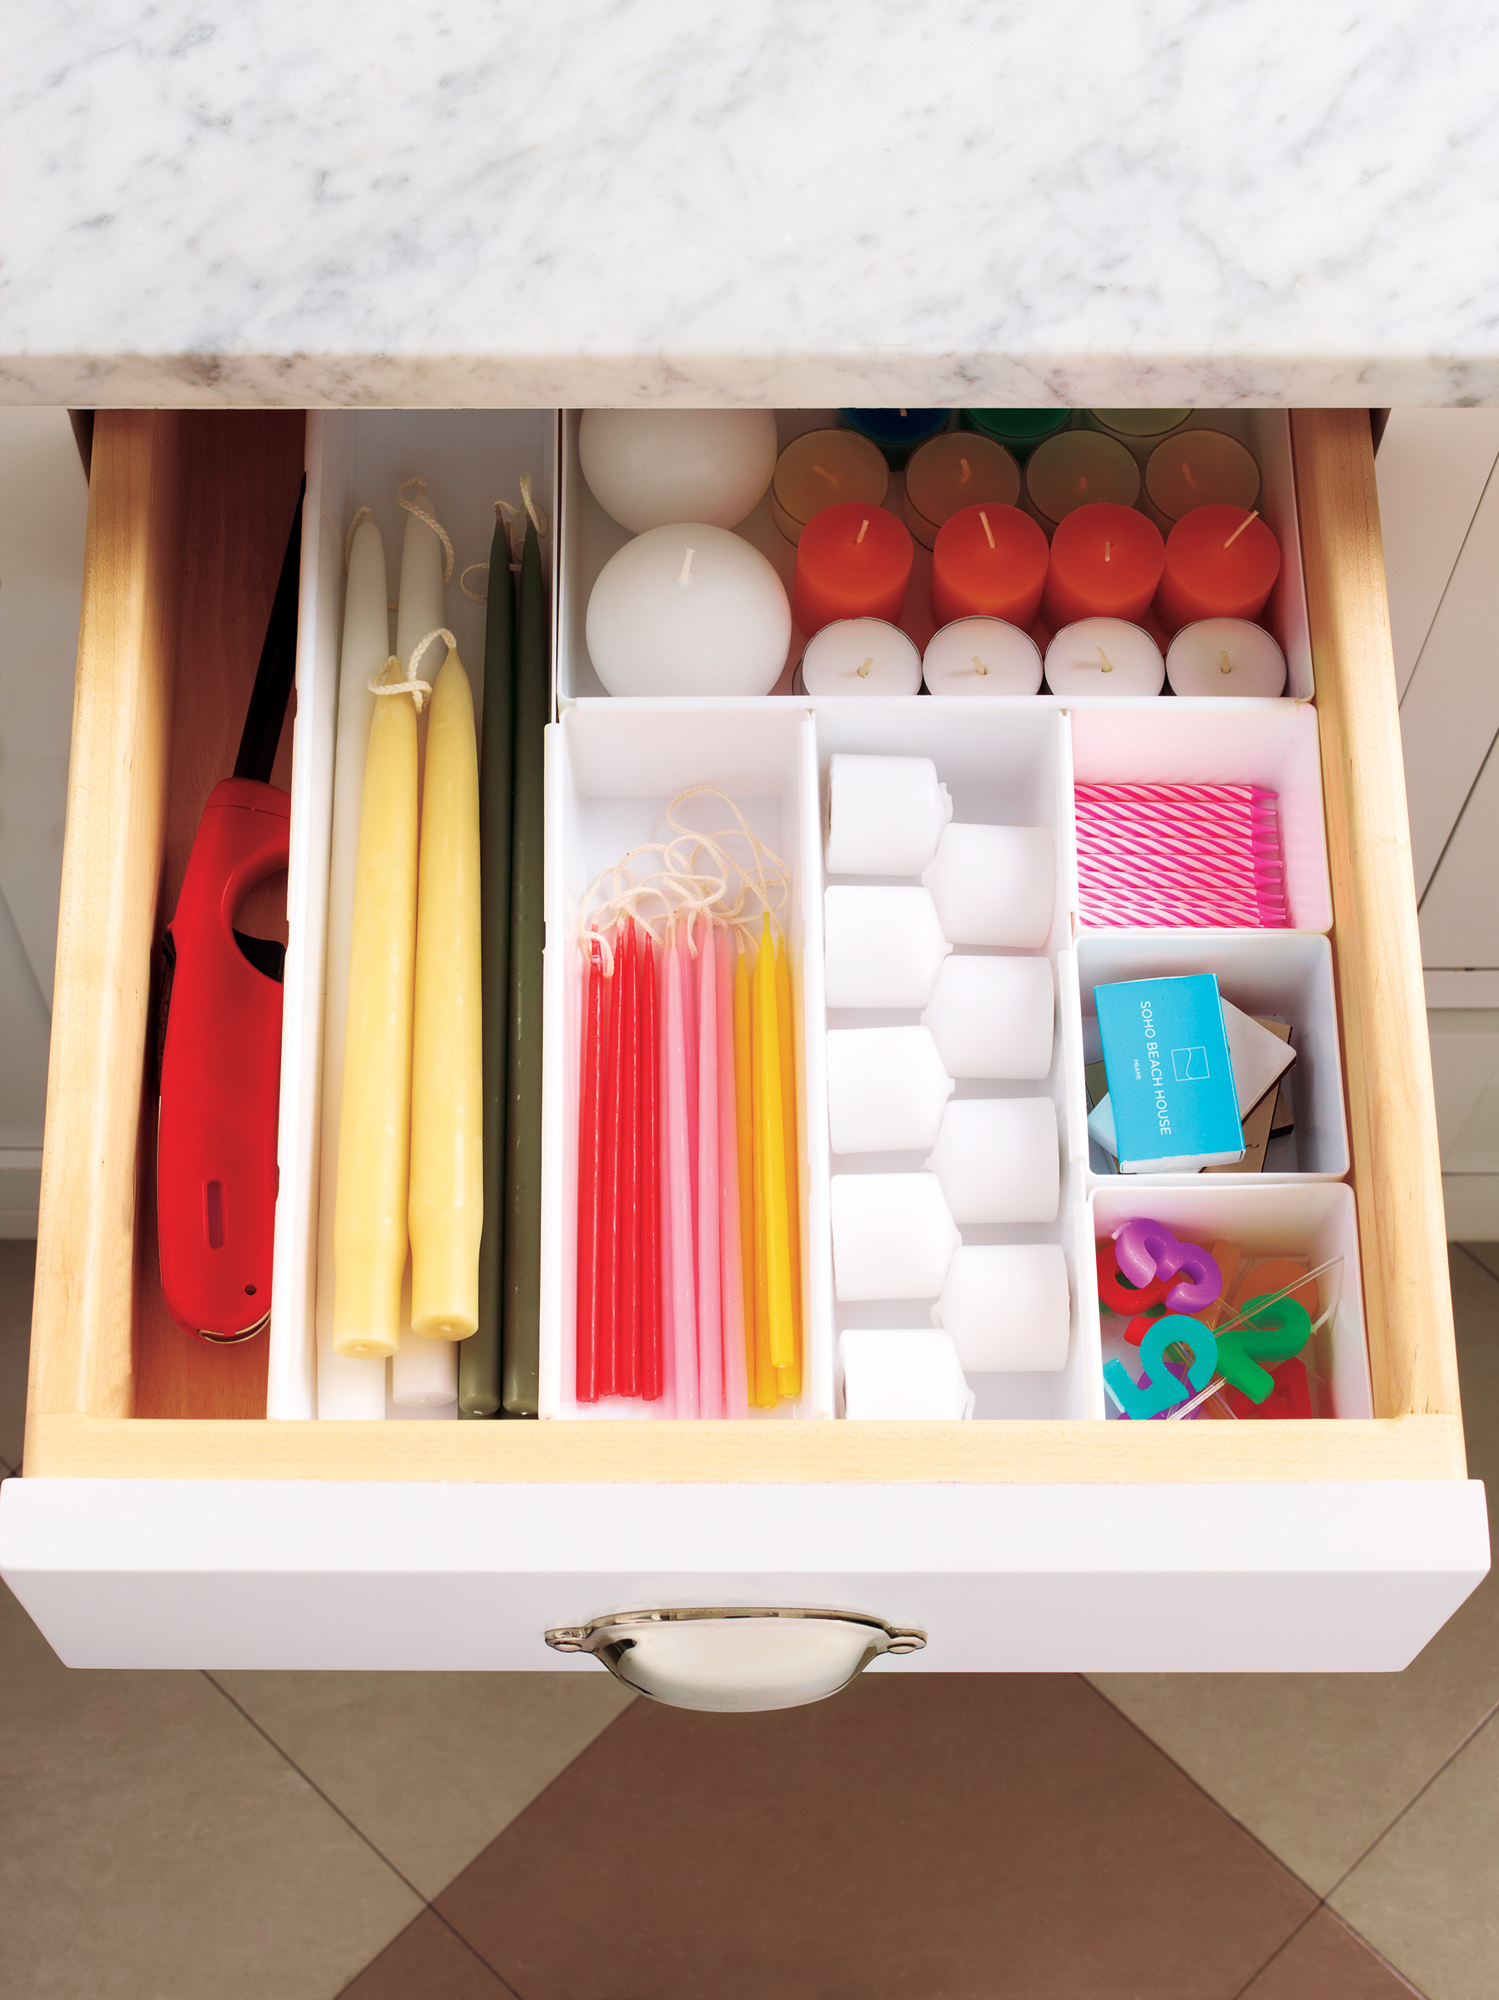 Candles, matches, and lighter organized in a drawer